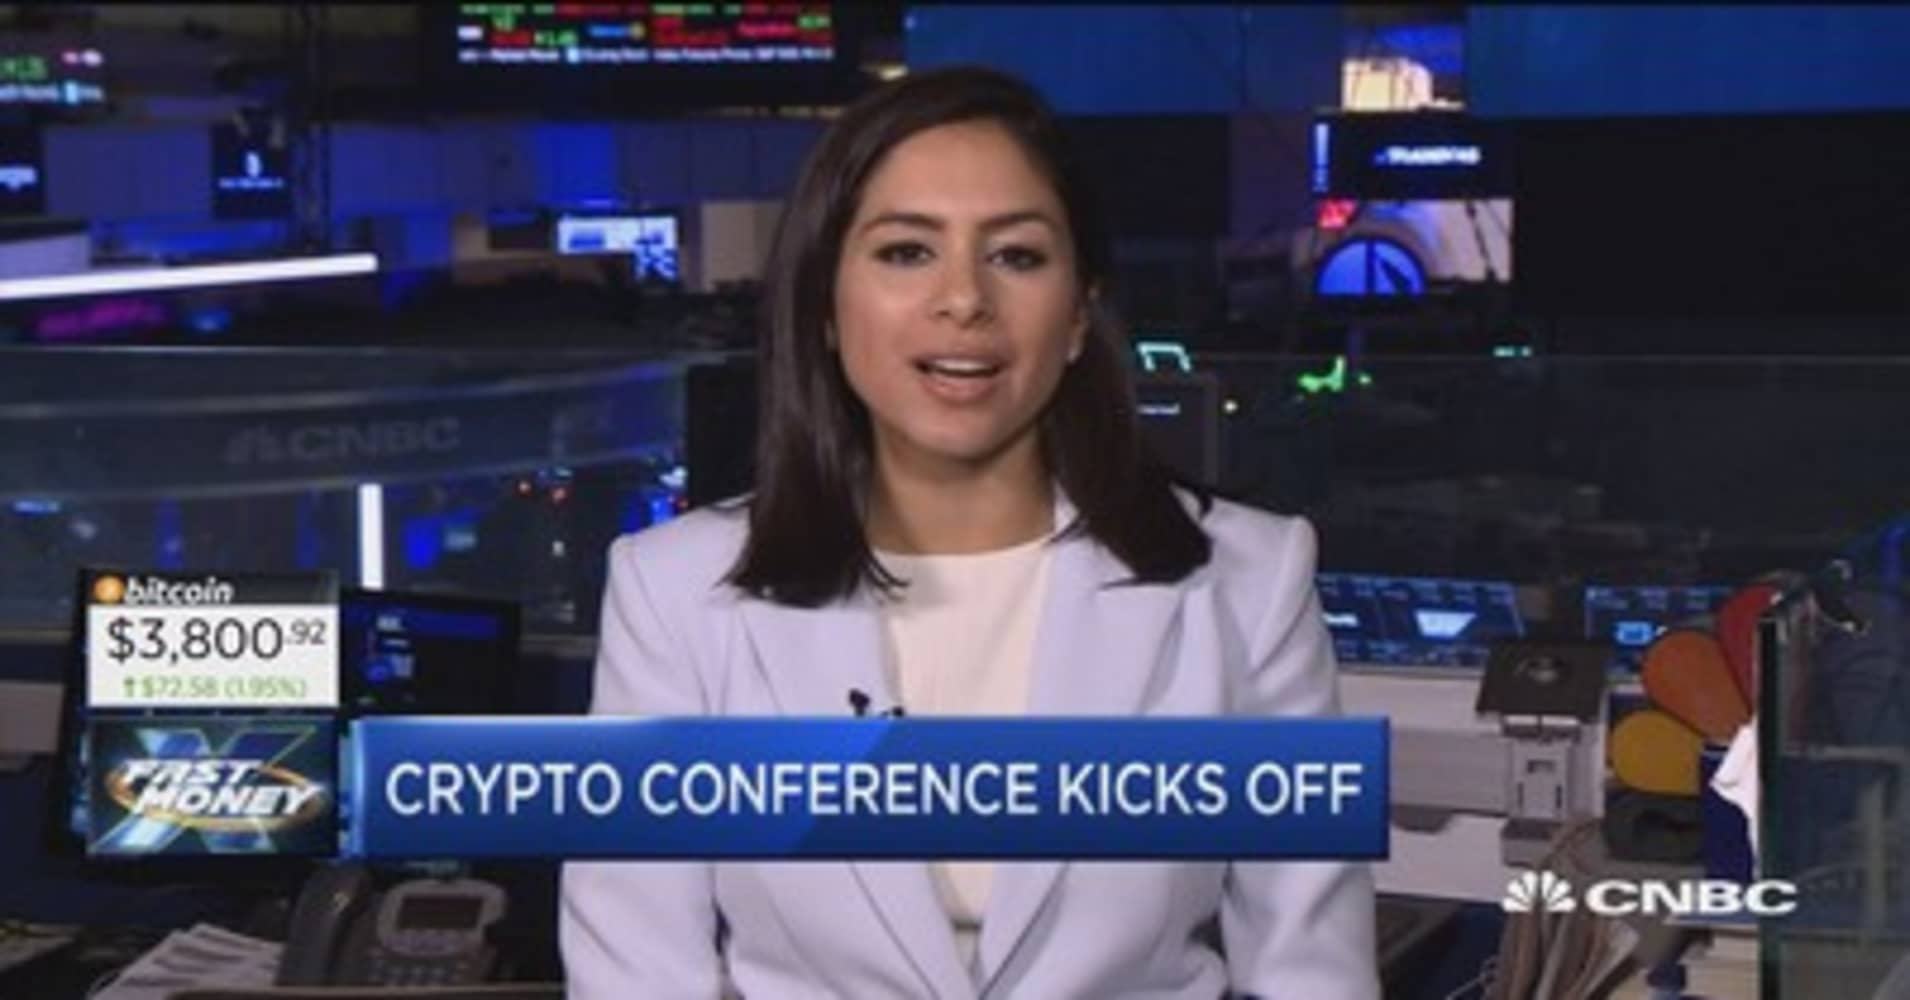 Another bitcoin week kicks off, will the selling stop?